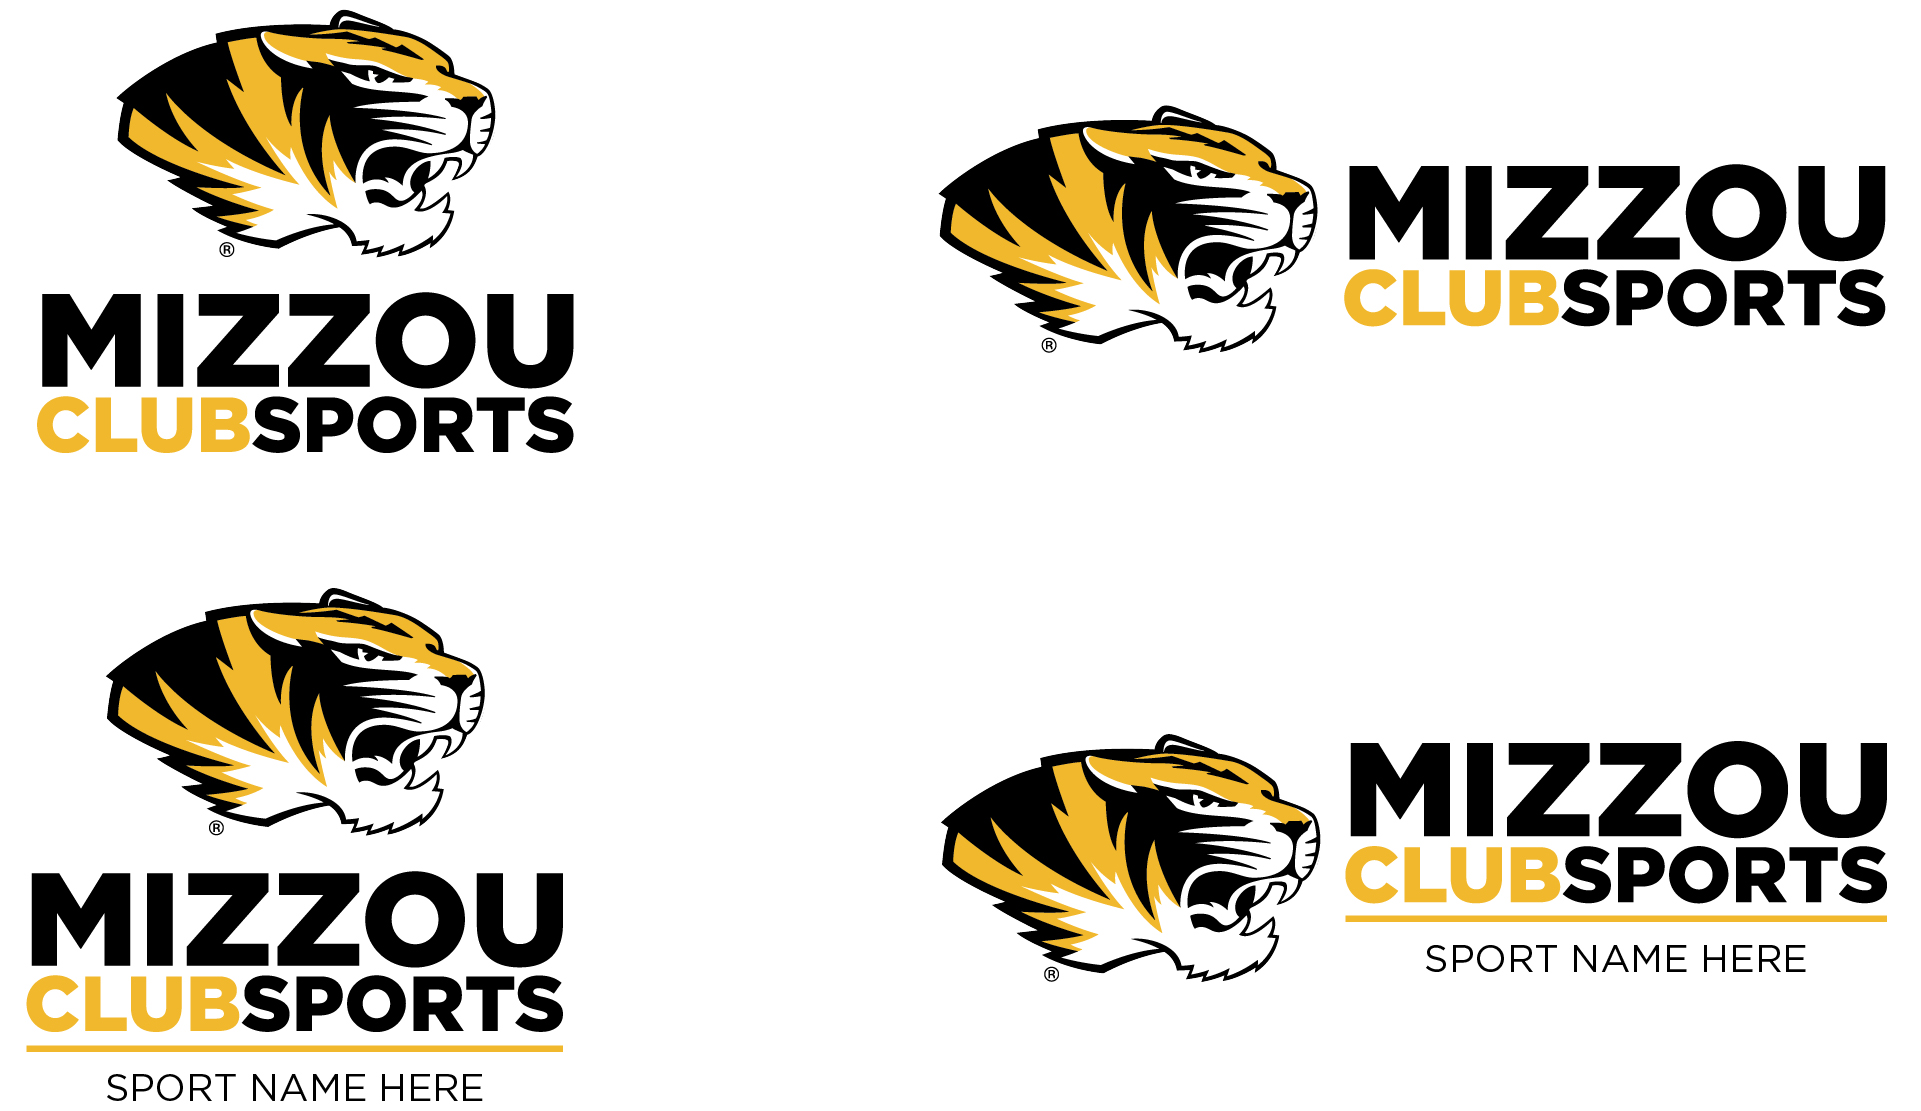 Graphic of the approved Mizzou Club Sports logos in full color.